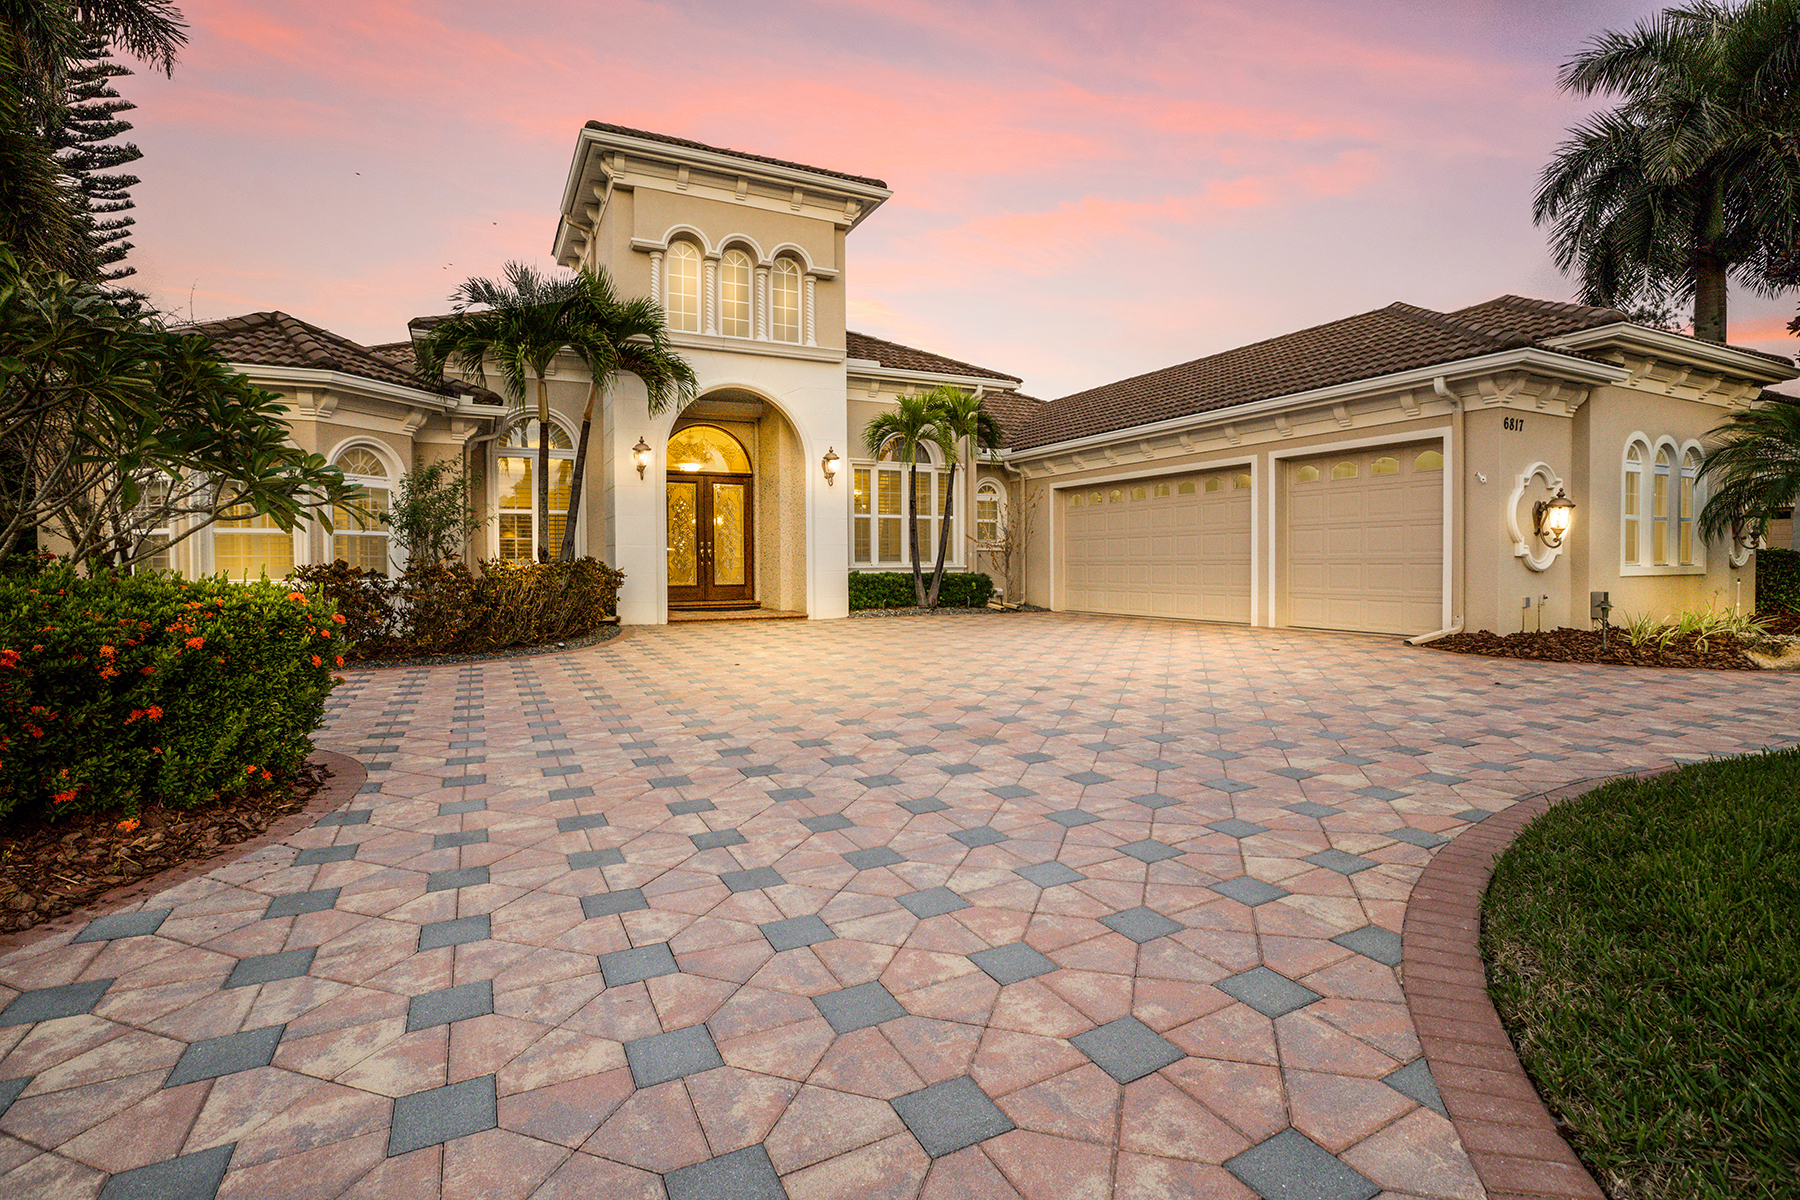 Single Family Homes for Sale at LAKEWOOD RANCH COUNTRY CLUB 6817 Dominion Ln, Lakewood Ranch, Florida 34202 United States